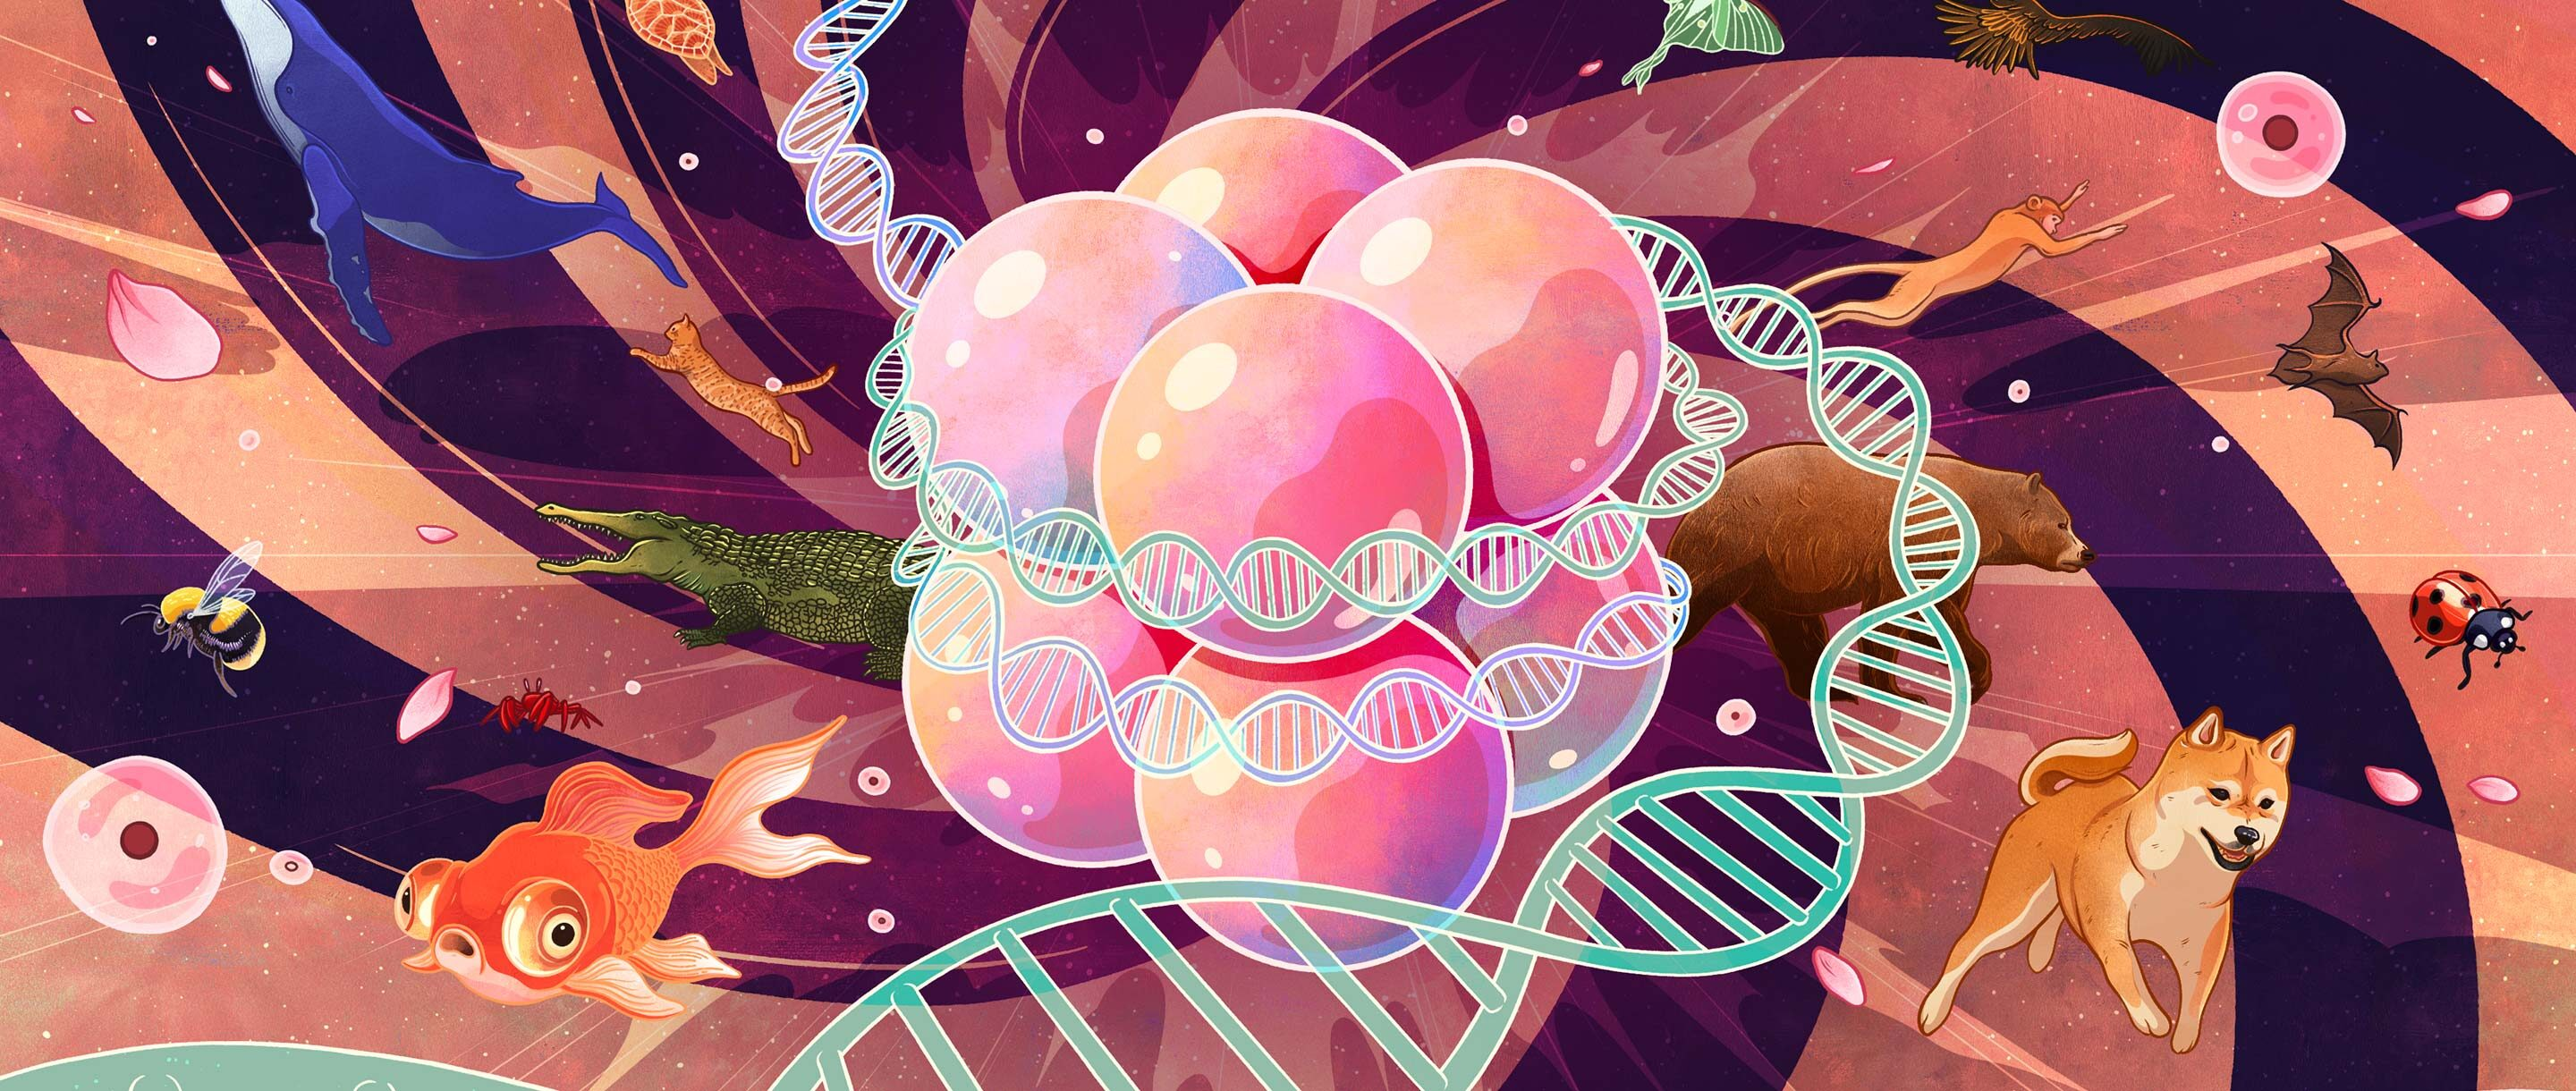 Illustration of DNA spooling around the histones in a classic nucleosome, with diverse animal life in the background.